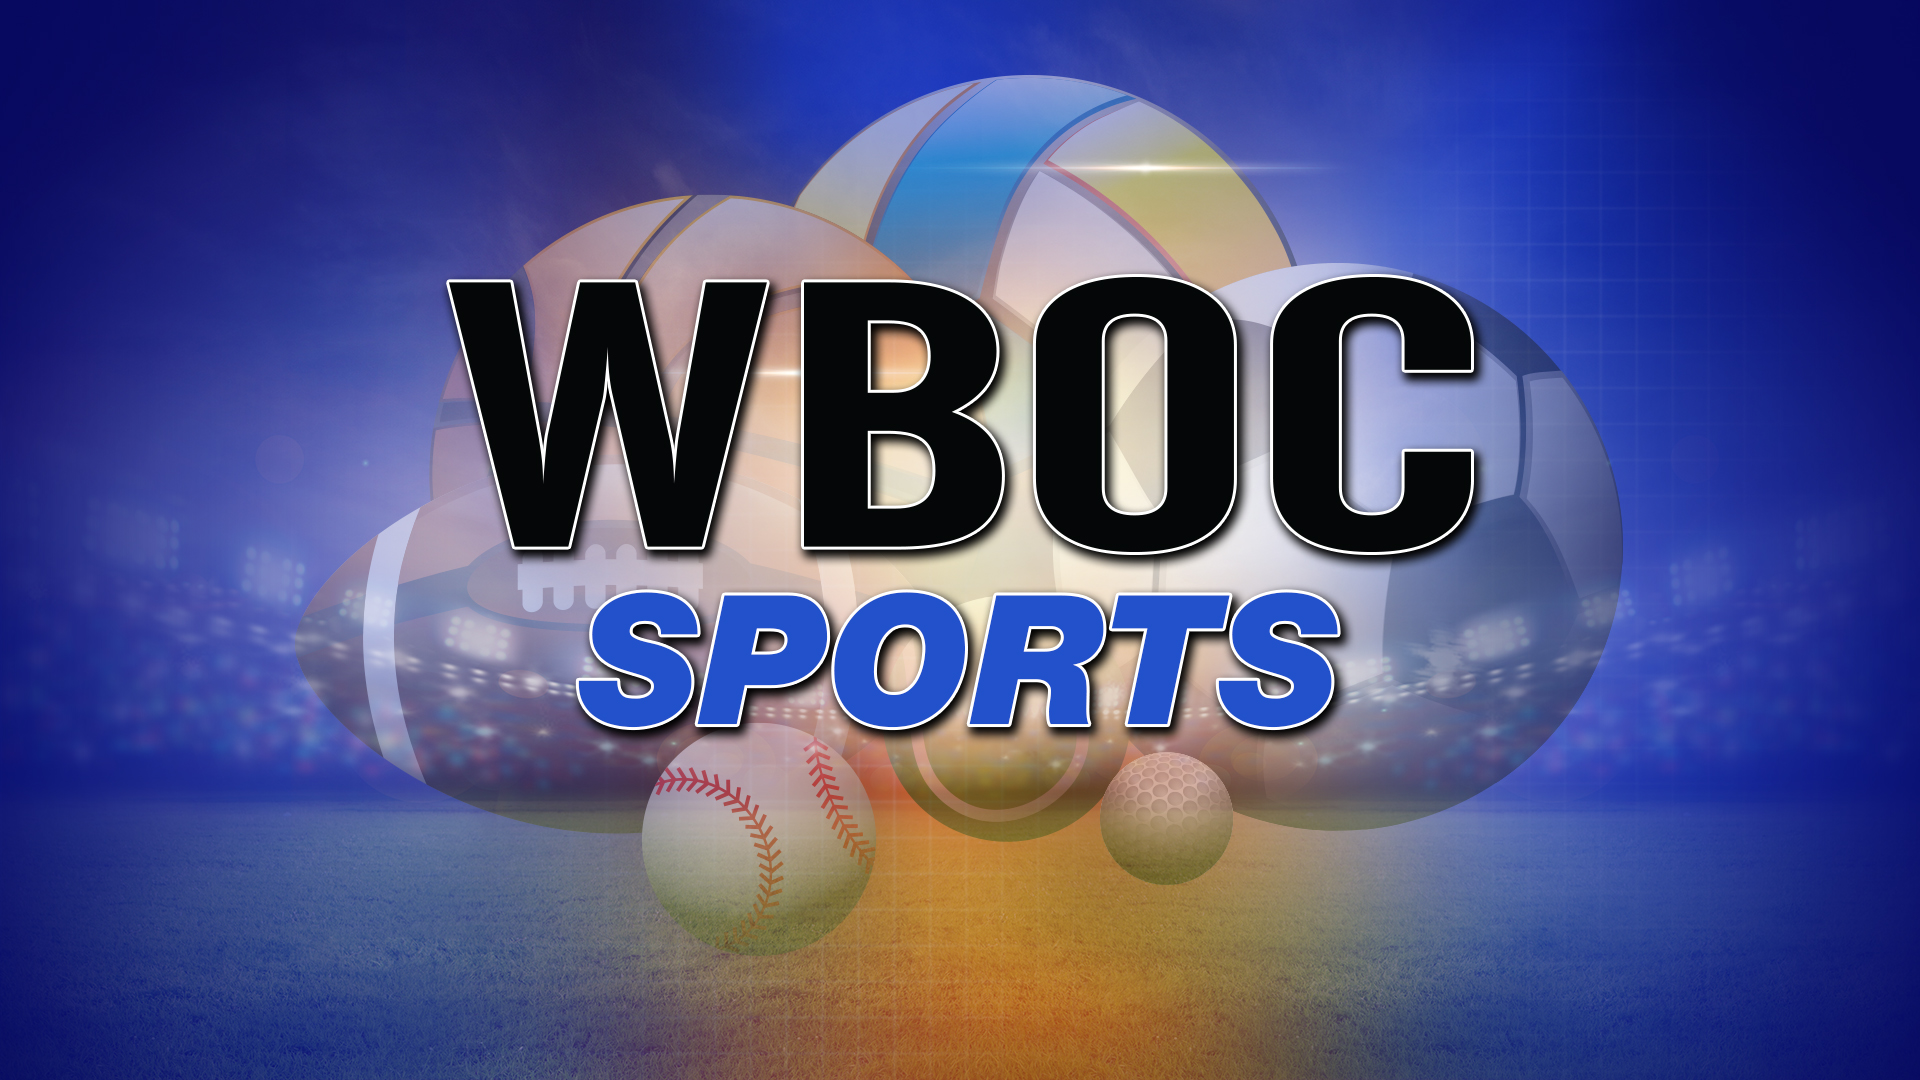 WBOC Sports Report: Monday, October 12, 2015